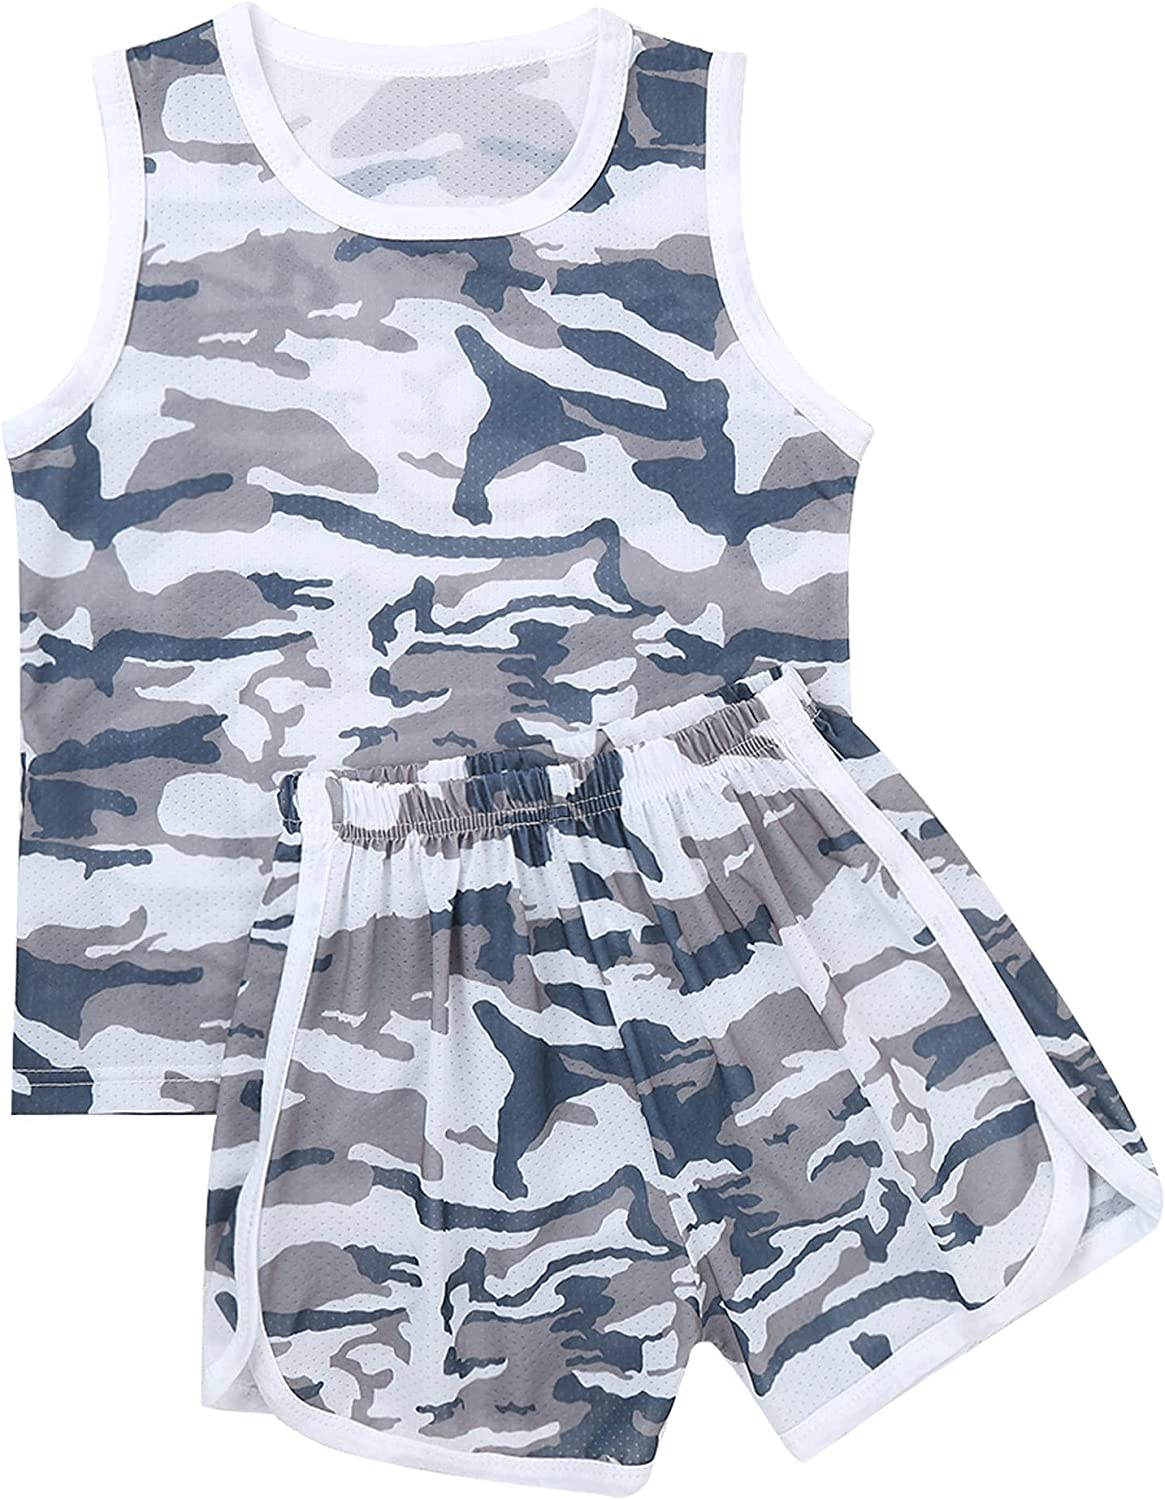 Hansber Kids Boys Girls Shorts with T-Shirts Set Camouflage Summer Outfits 2 Piece Fashion Tracksuit Clothes